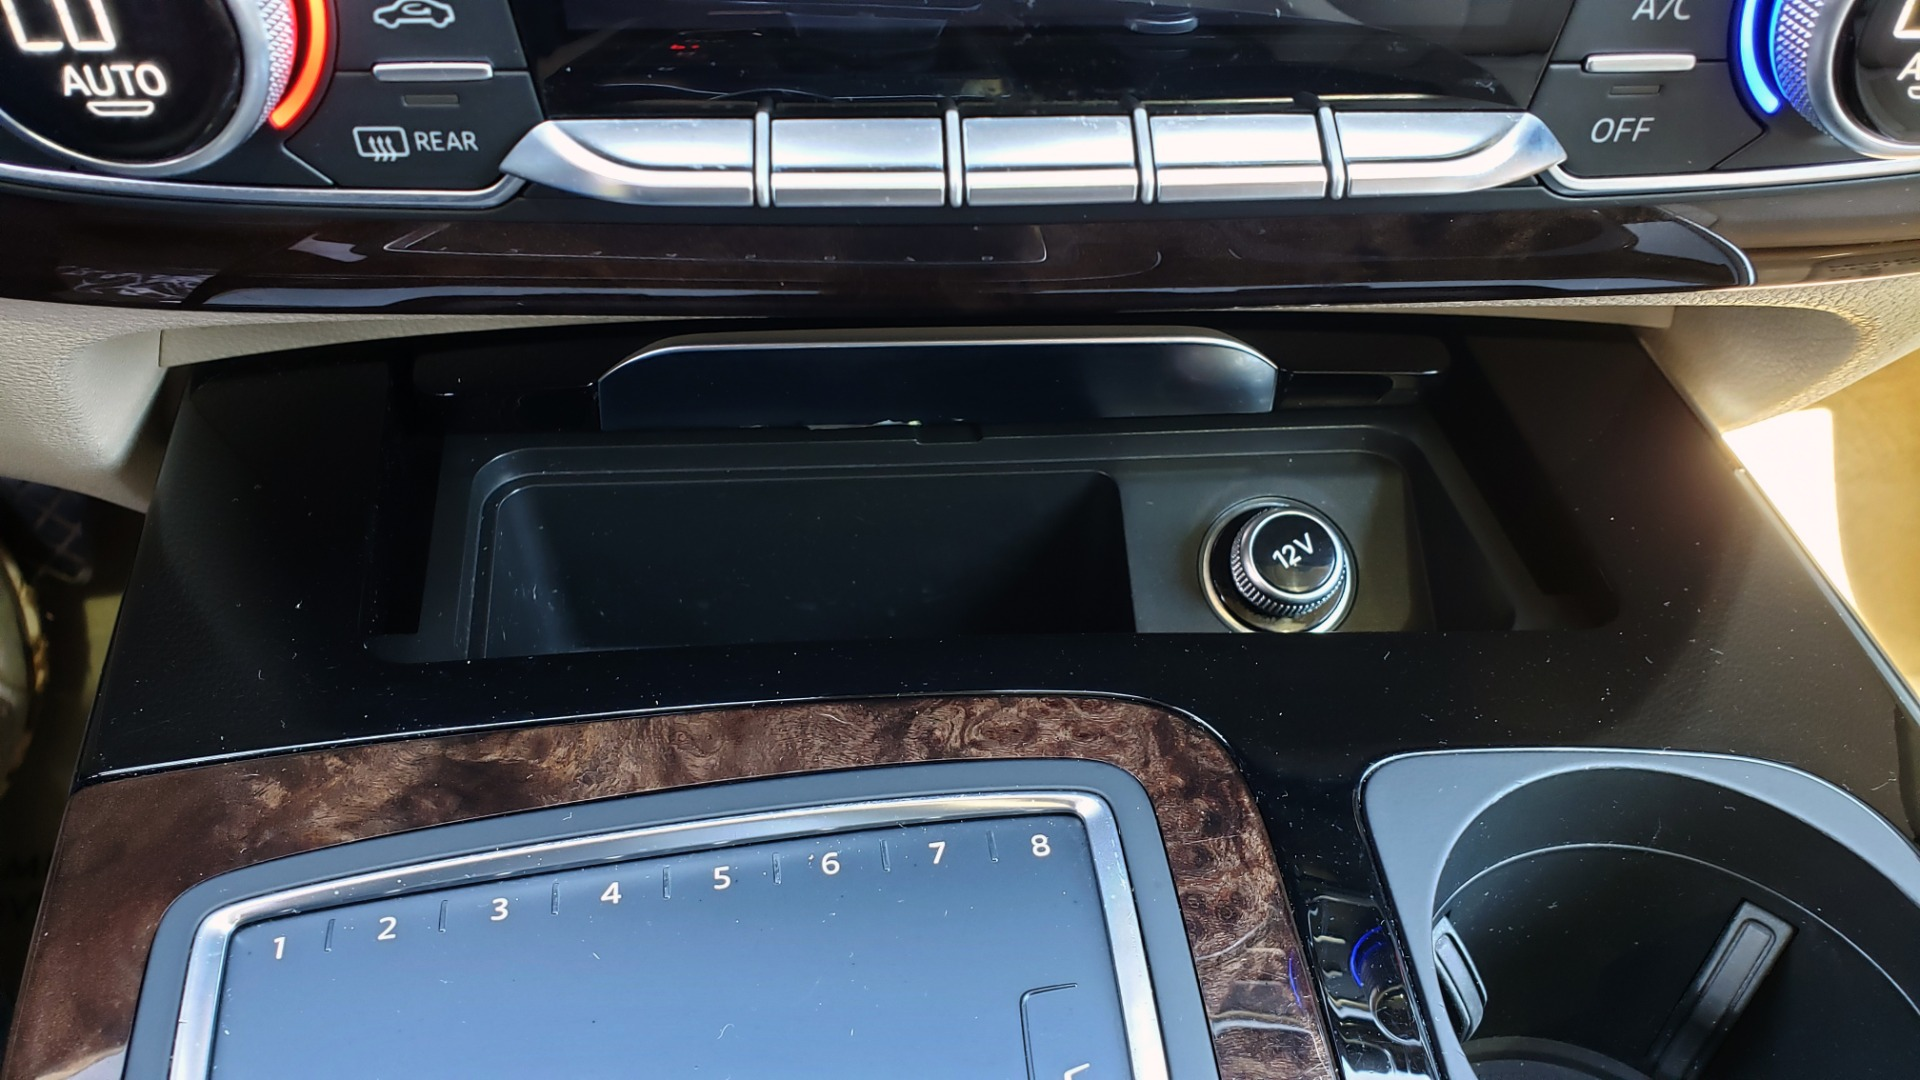 Used 2018 Audi Q7 PRESTIGE 3.0T CLD WTHR / NAV / BOSE / HEADS-UP / REARVIEW for sale Sold at Formula Imports in Charlotte NC 28227 55